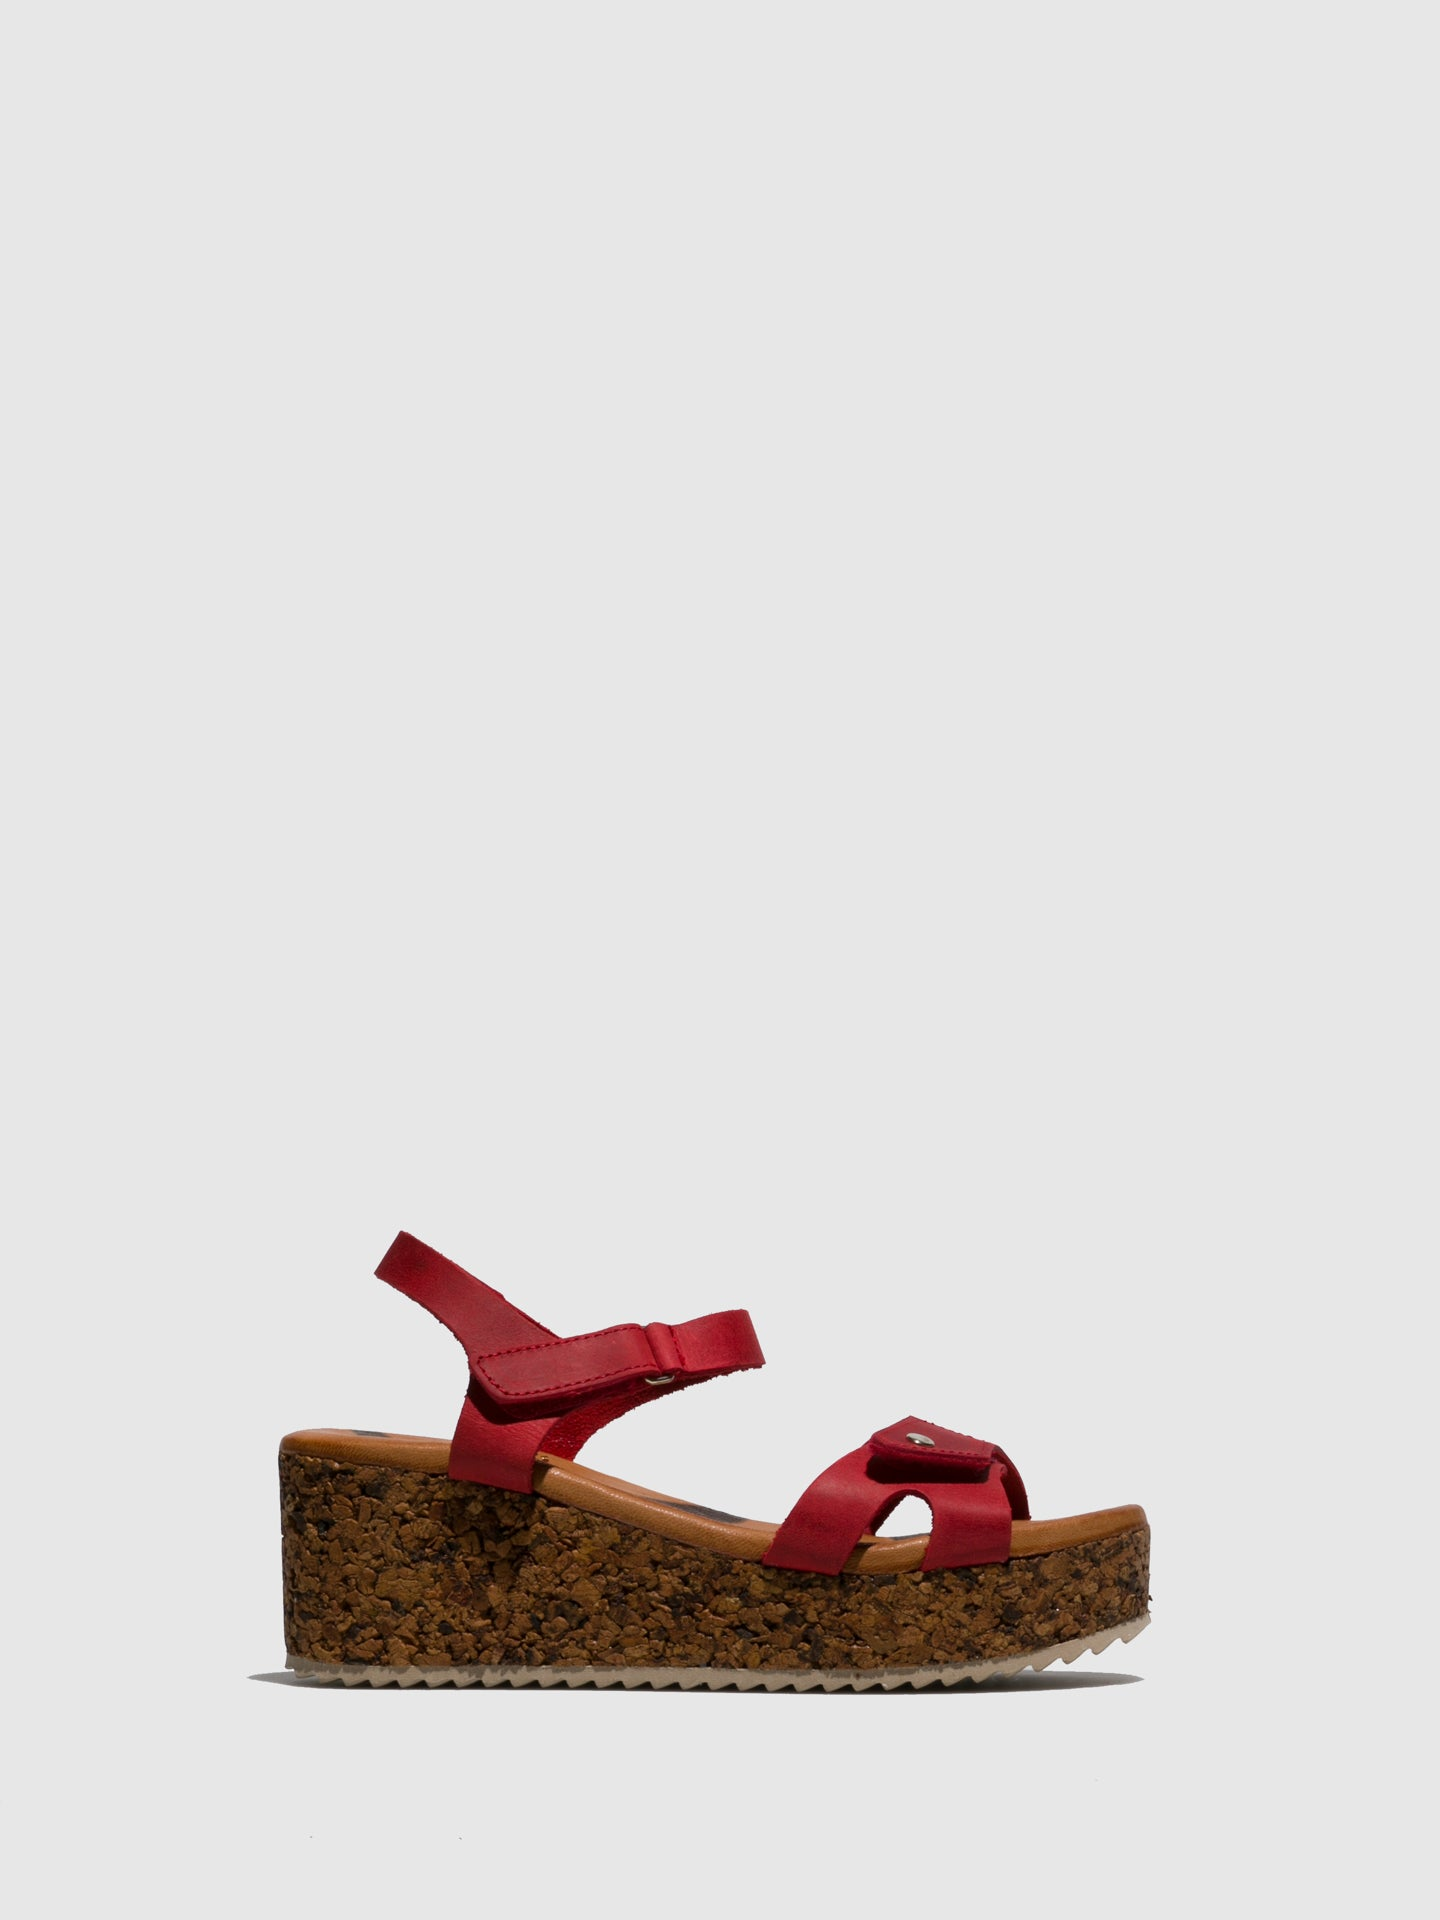 Marila Shoes Red Wedge Sandals